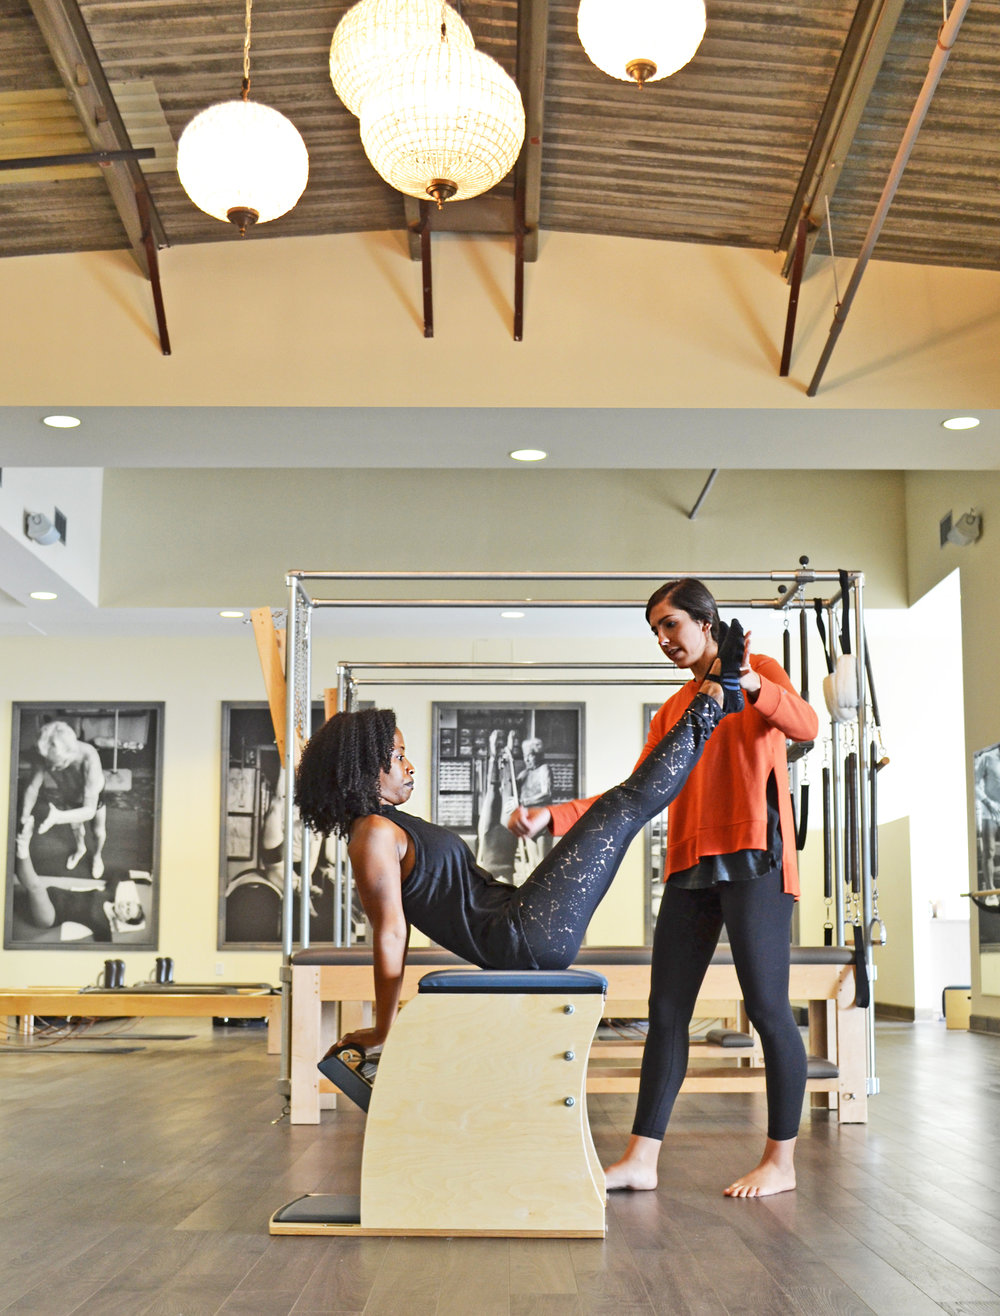 Come on into the studio. We are ready to cater your Pilates workout to you and your needs.